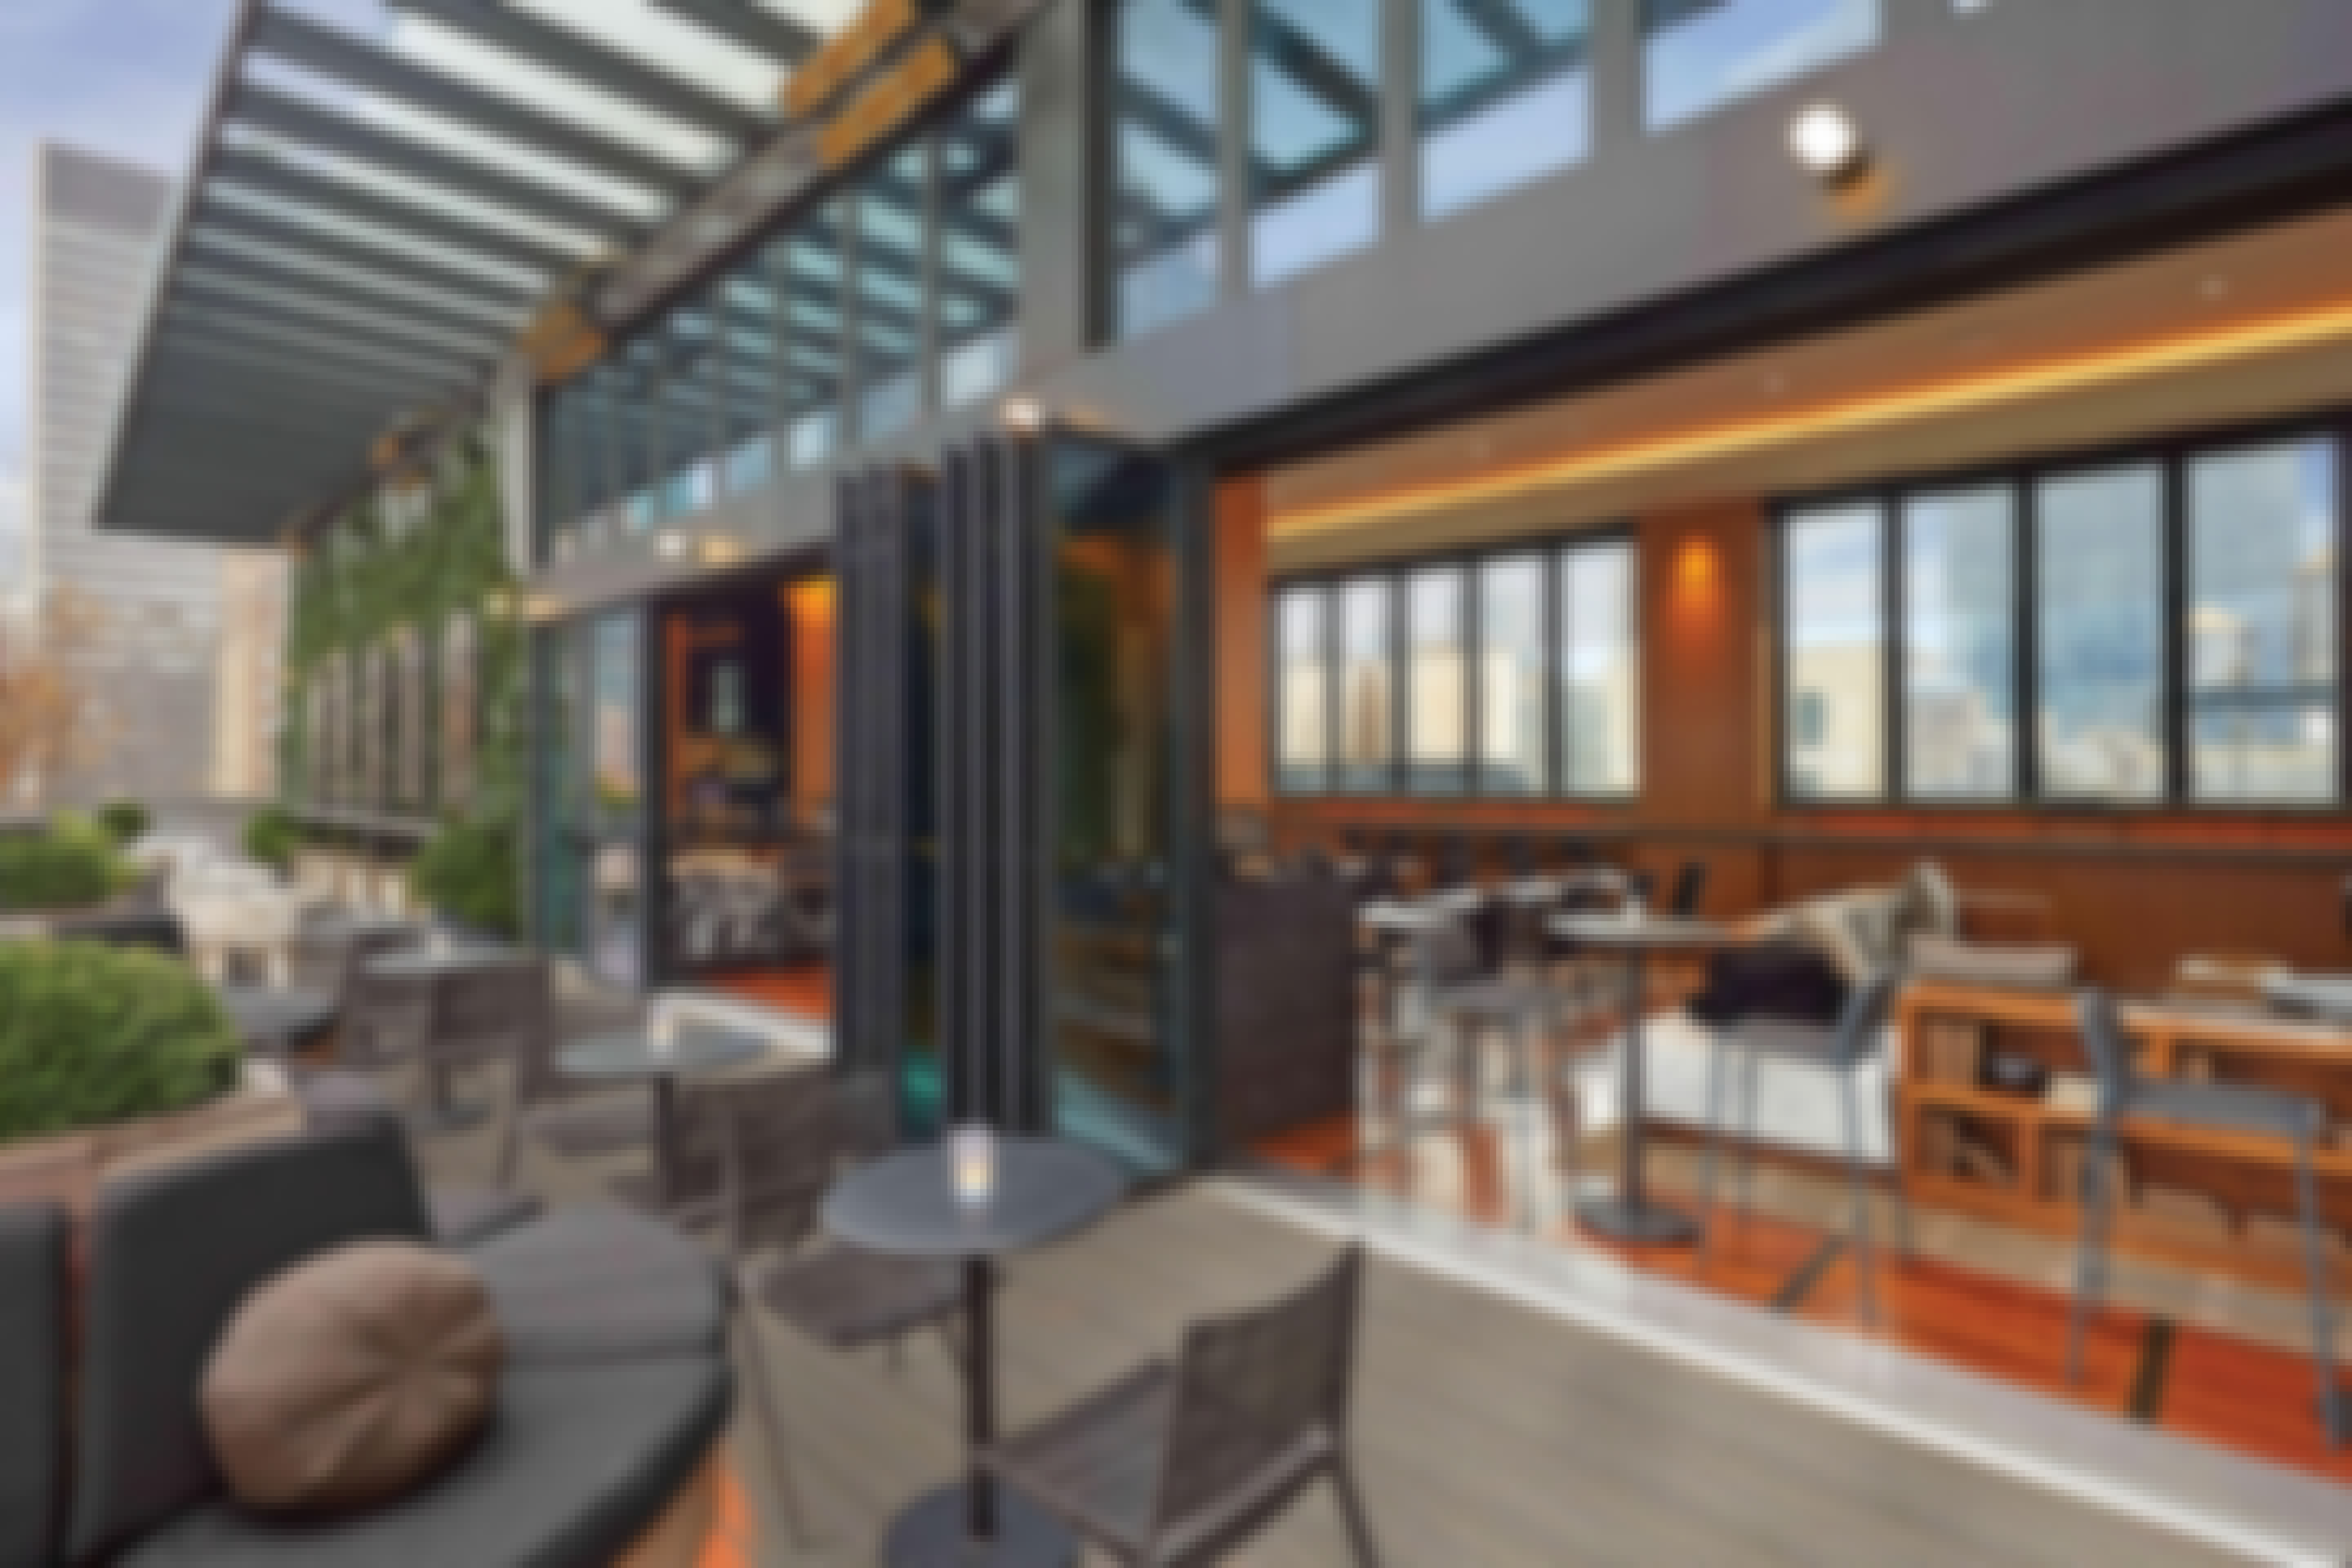 The Castell Lounge features the SL70 system to create a seamless transition between bar and rooftop terrace.